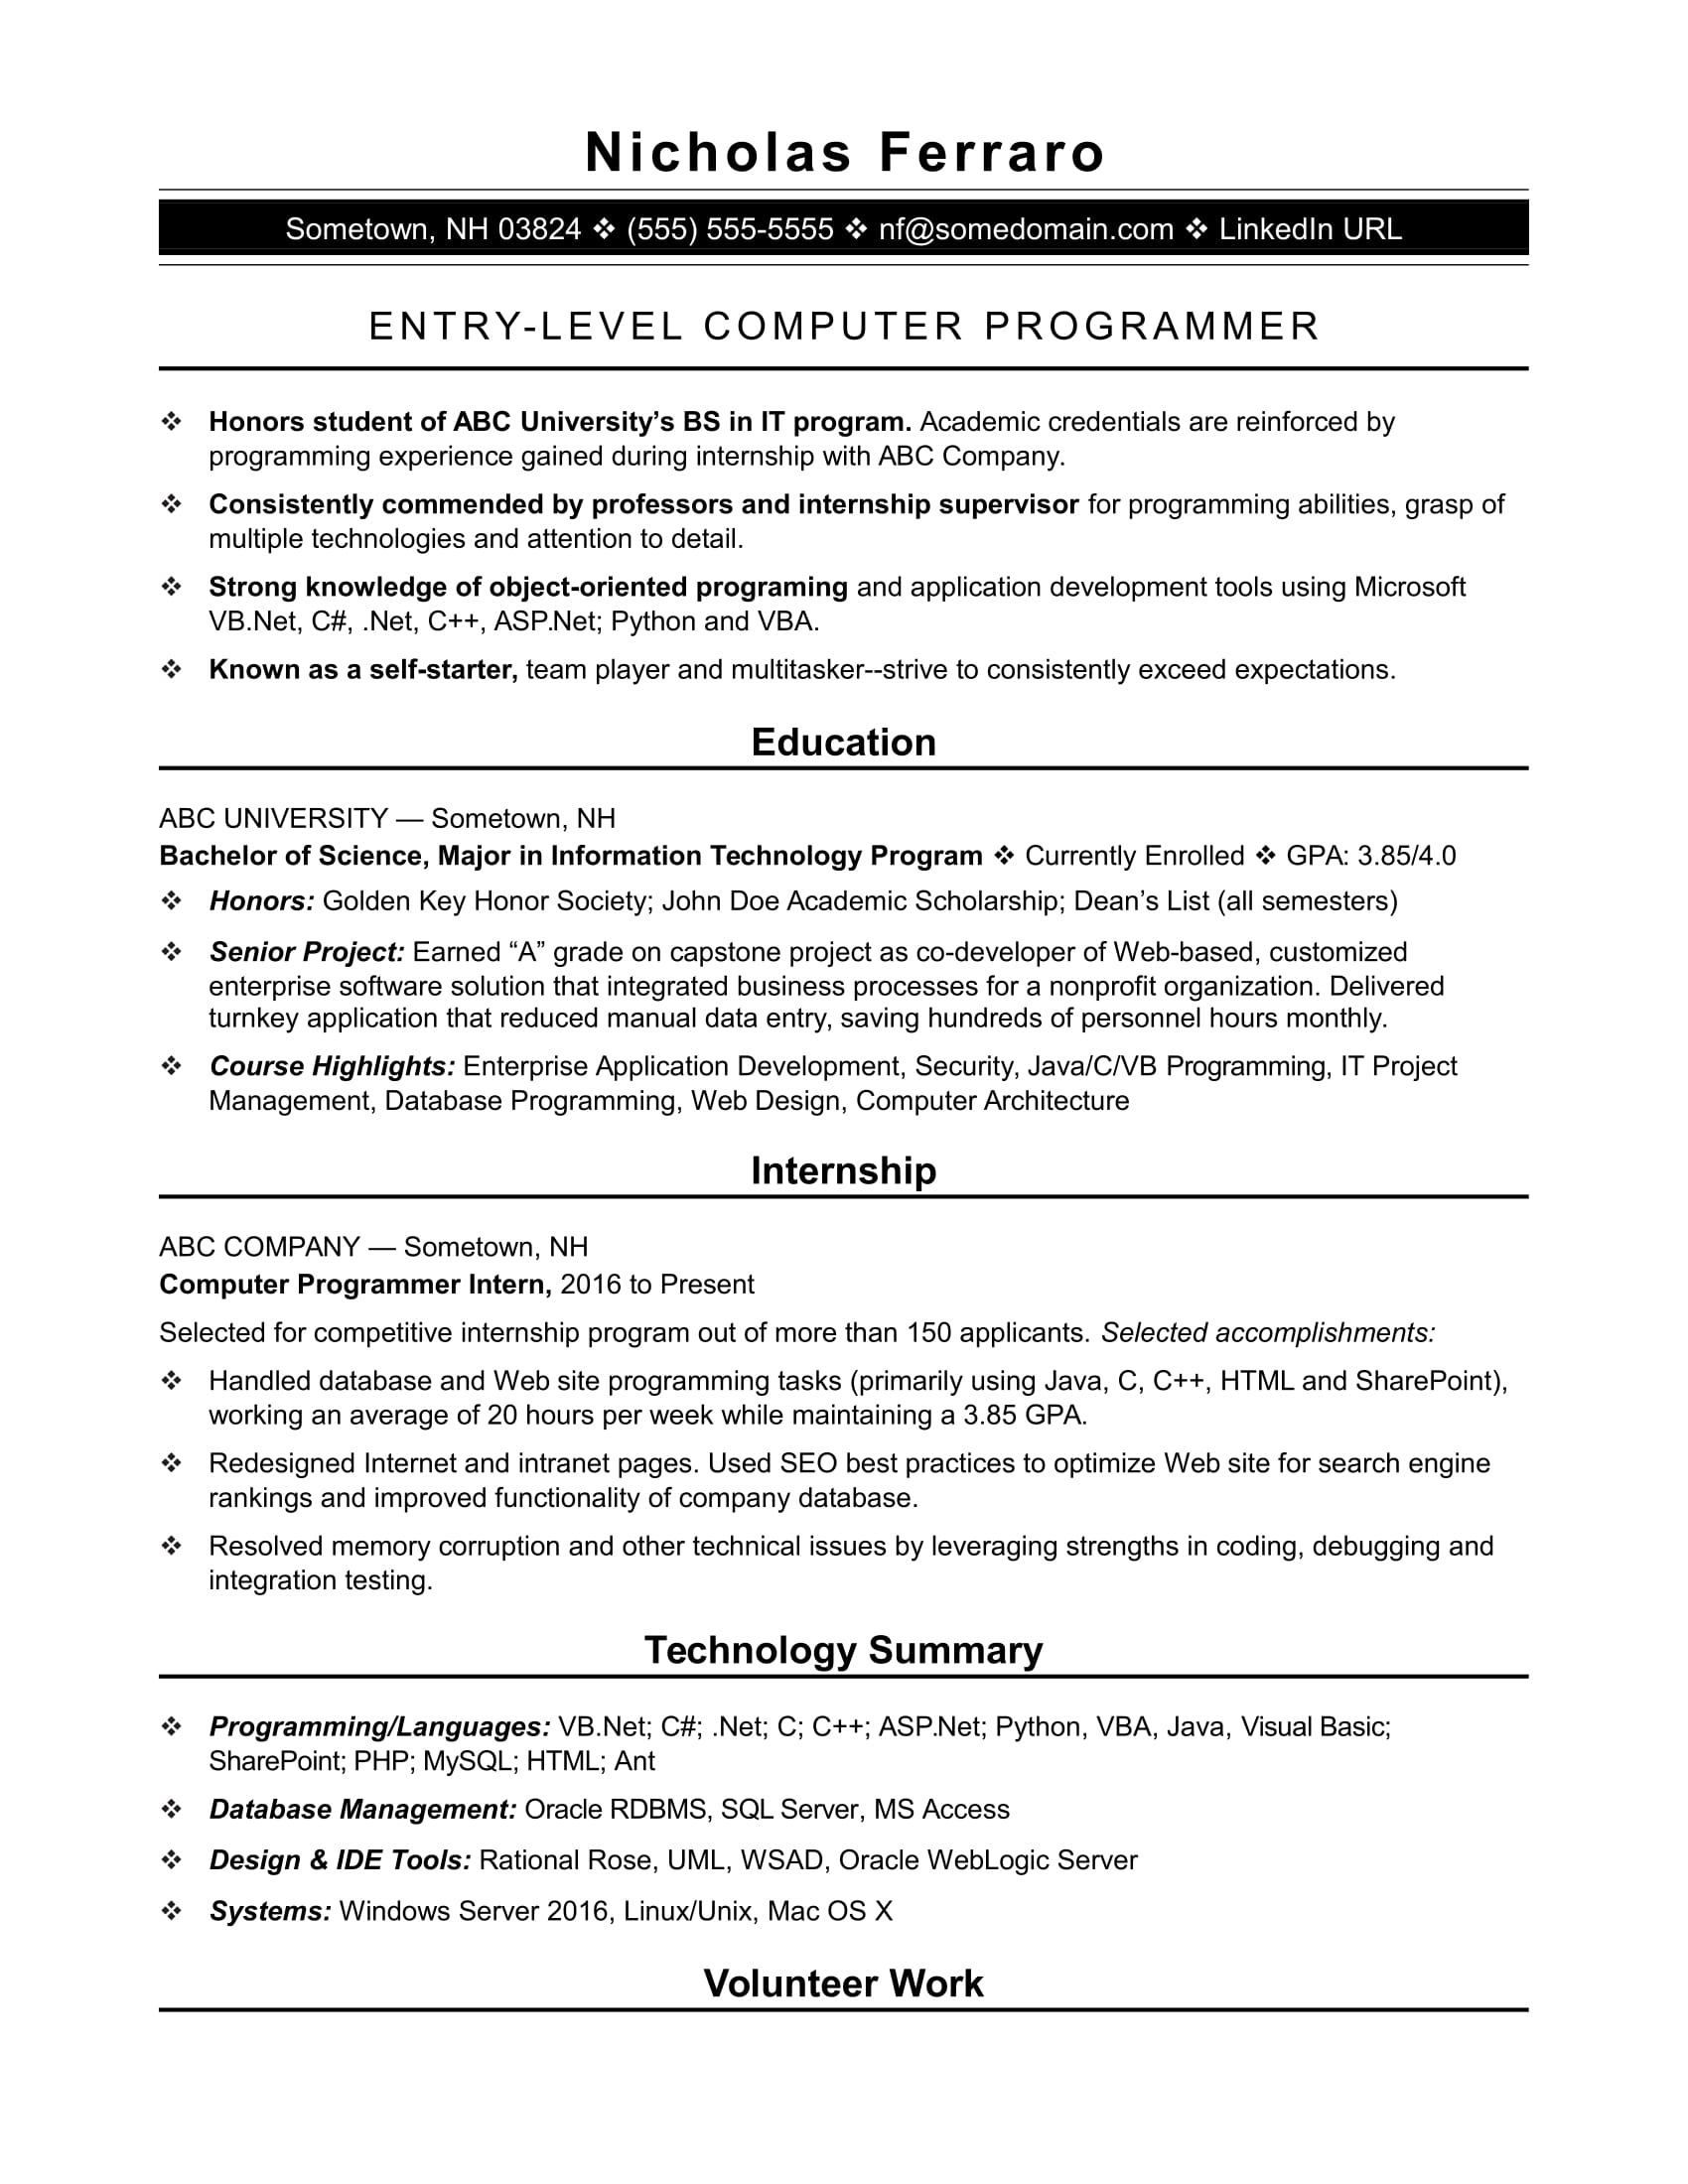 Sample Resume For An Entry Level Computer Programmer Monster Com